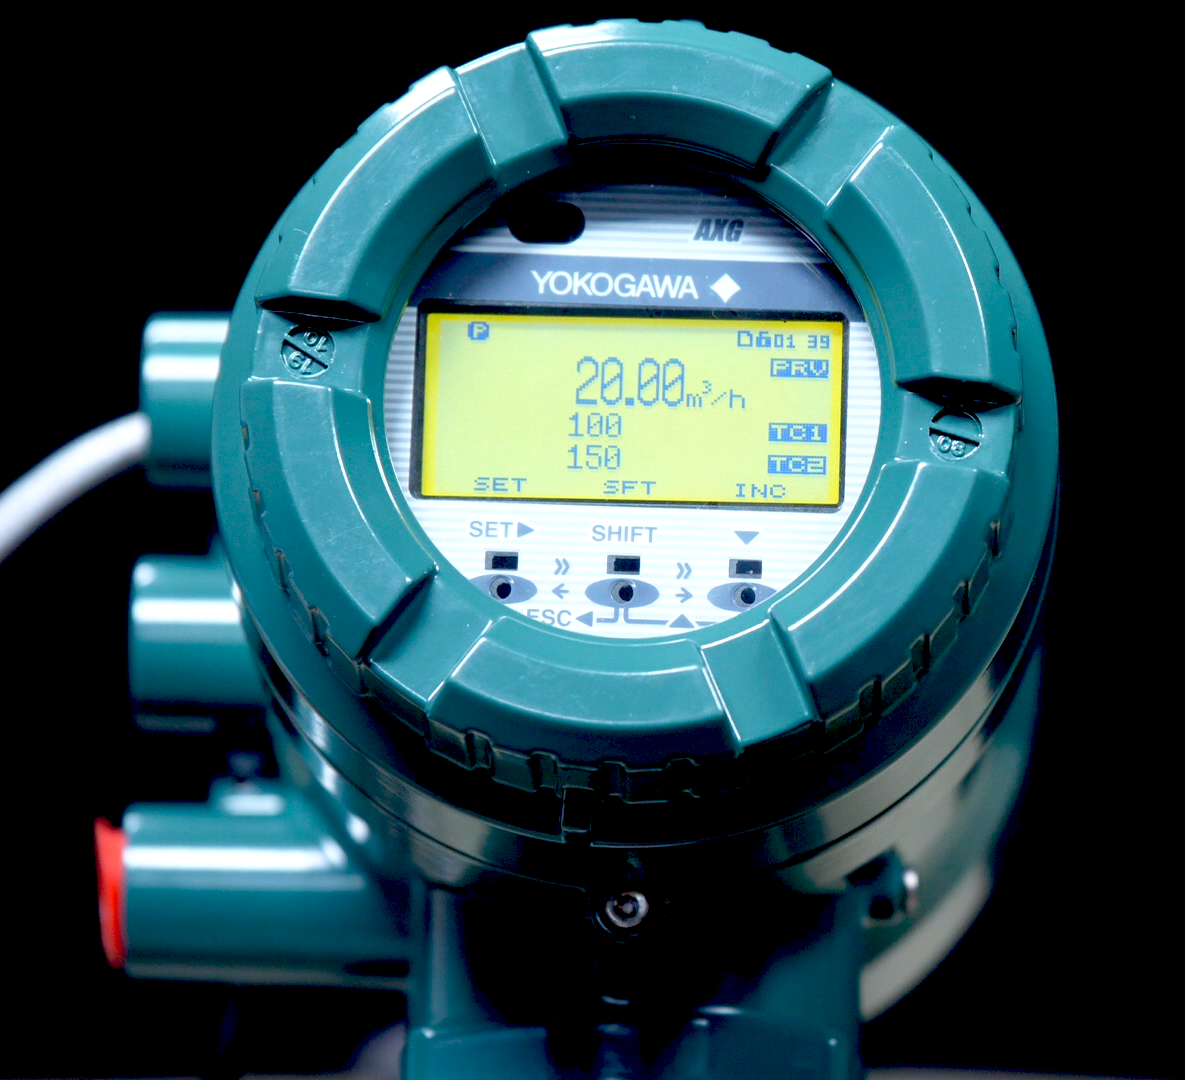 ADMAG TI - AXG with EtherNet/IP Communication Functionality thumbnail